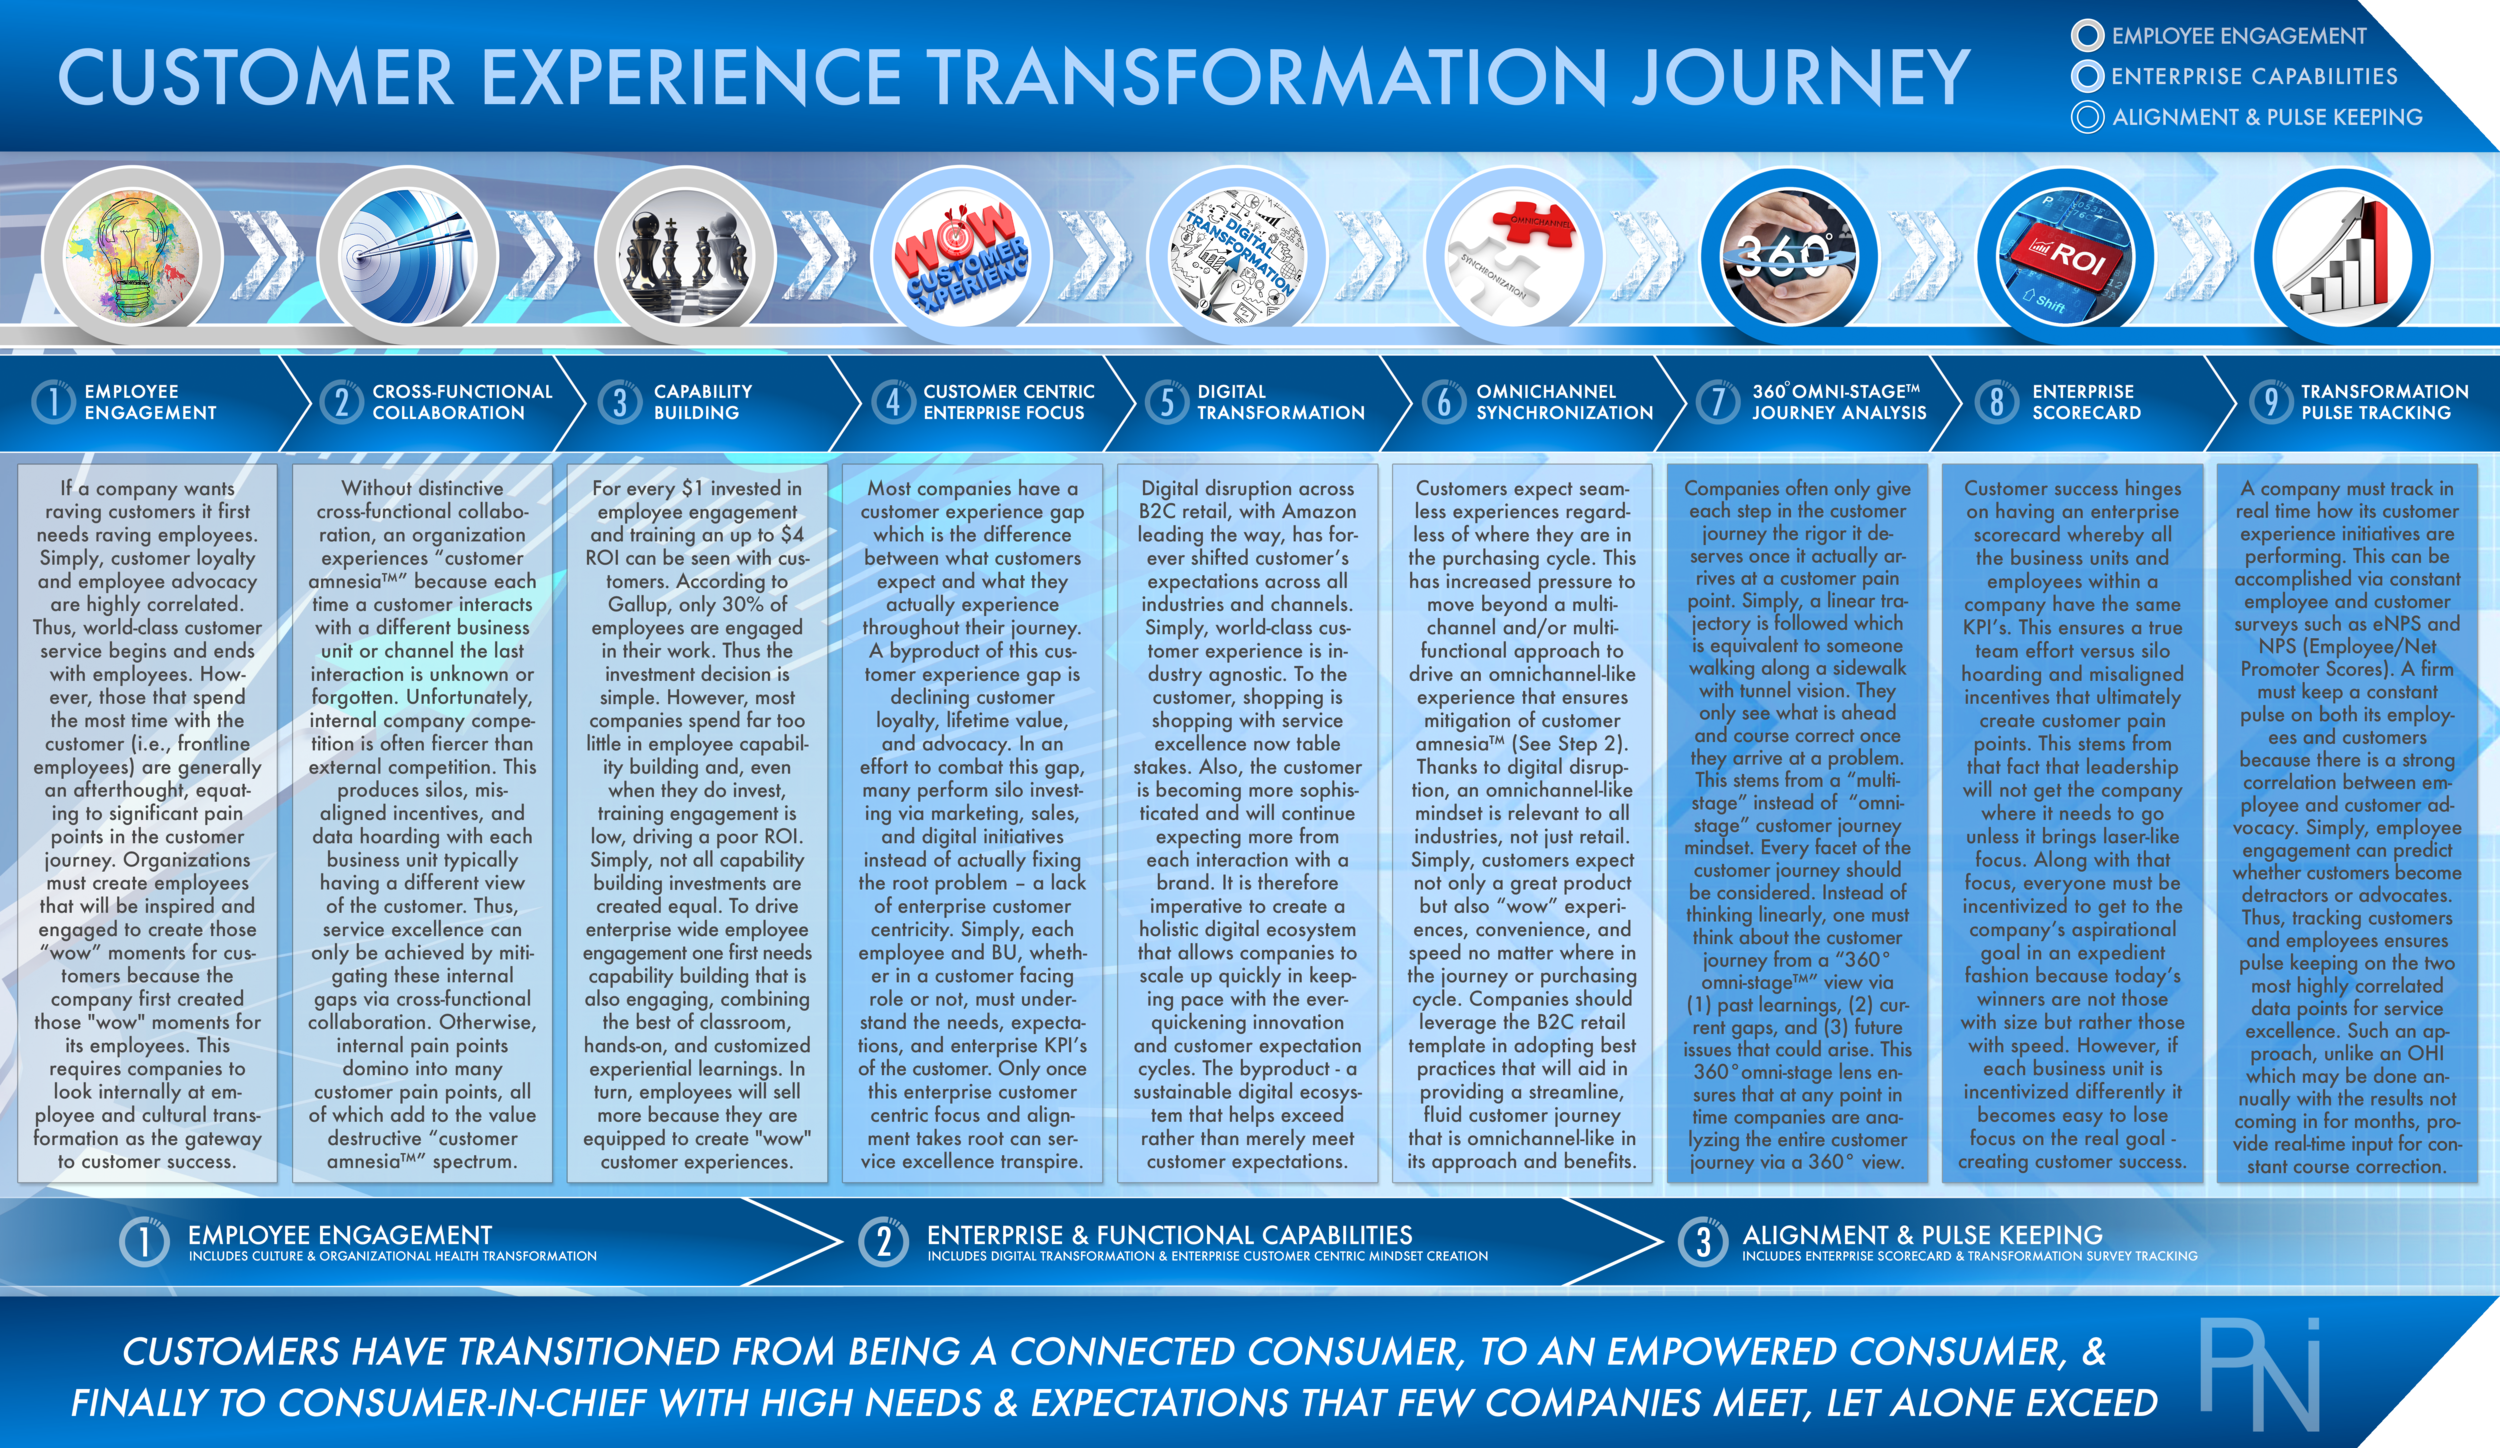 9-STEP CUSTOMER EXPERIENCE JOURNEY  Exhibit 5  (Click to Enlarge)